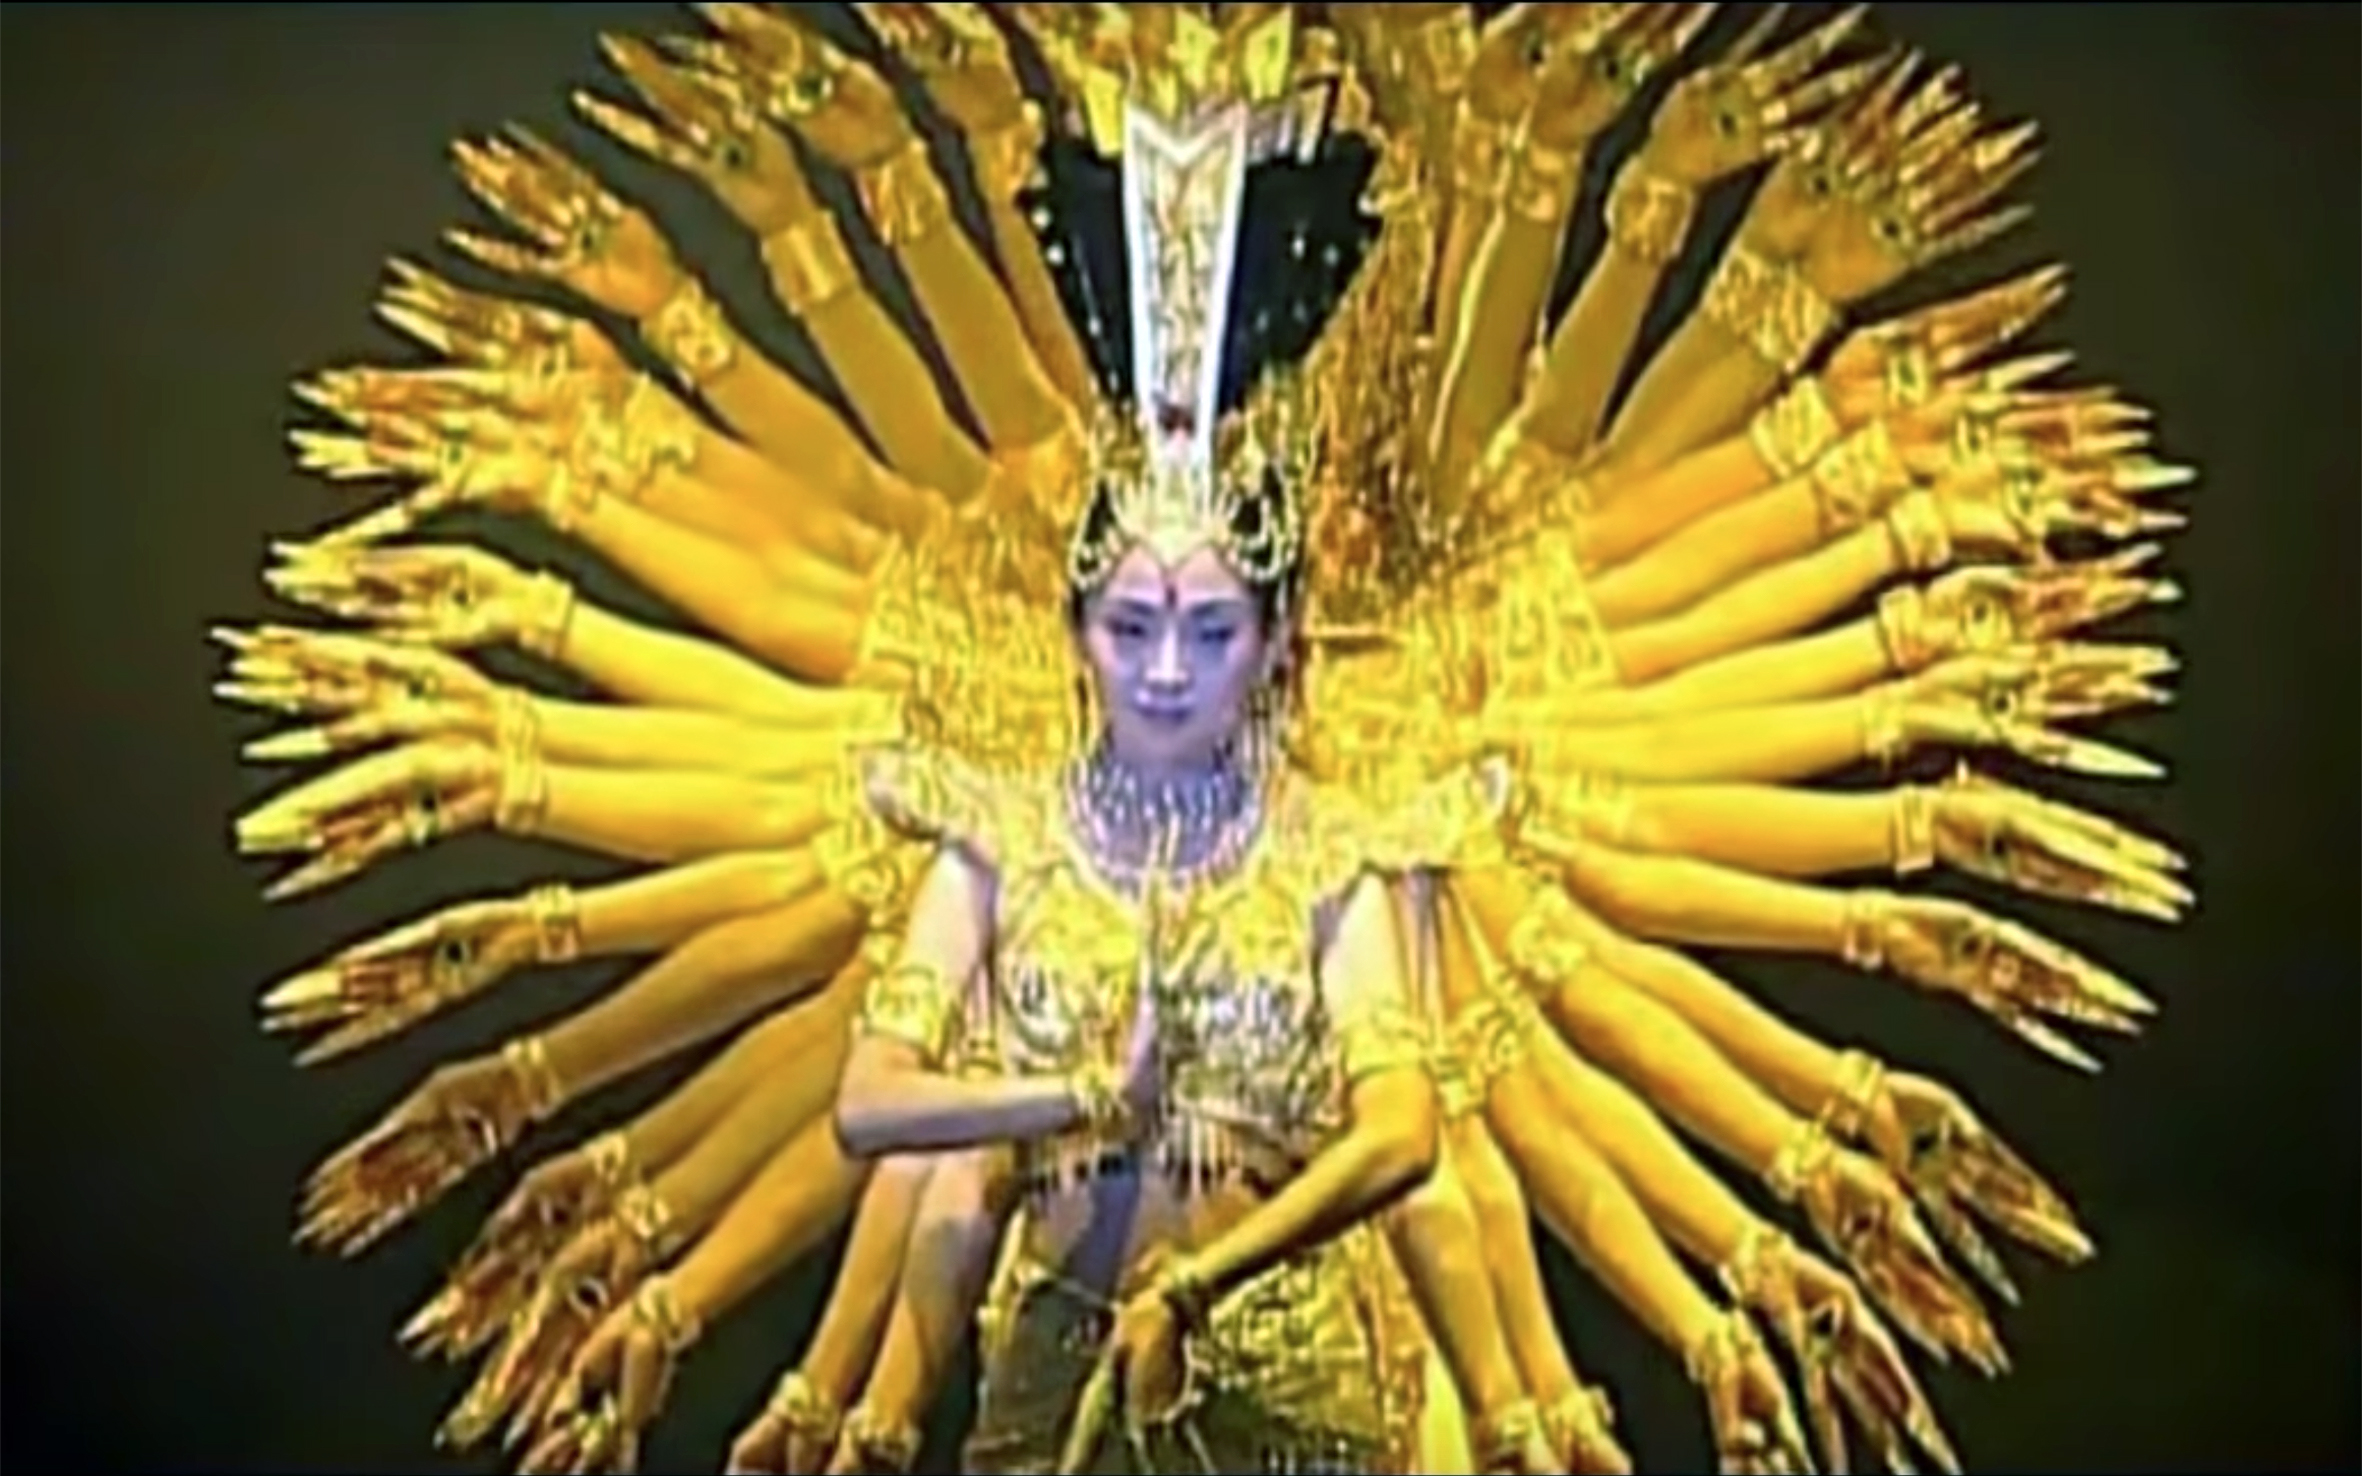 """344.Guan Yin / China - Guan Yin is a thousand hands DANCE, based on Dewi Kwan Im / Mak Kwan Im (""""Mother Guan Yin""""), an East Asian bodhisattva associated with compassion and venerated by Mahayana Buddhists and followers of Chinese folk religions, also known as the"""